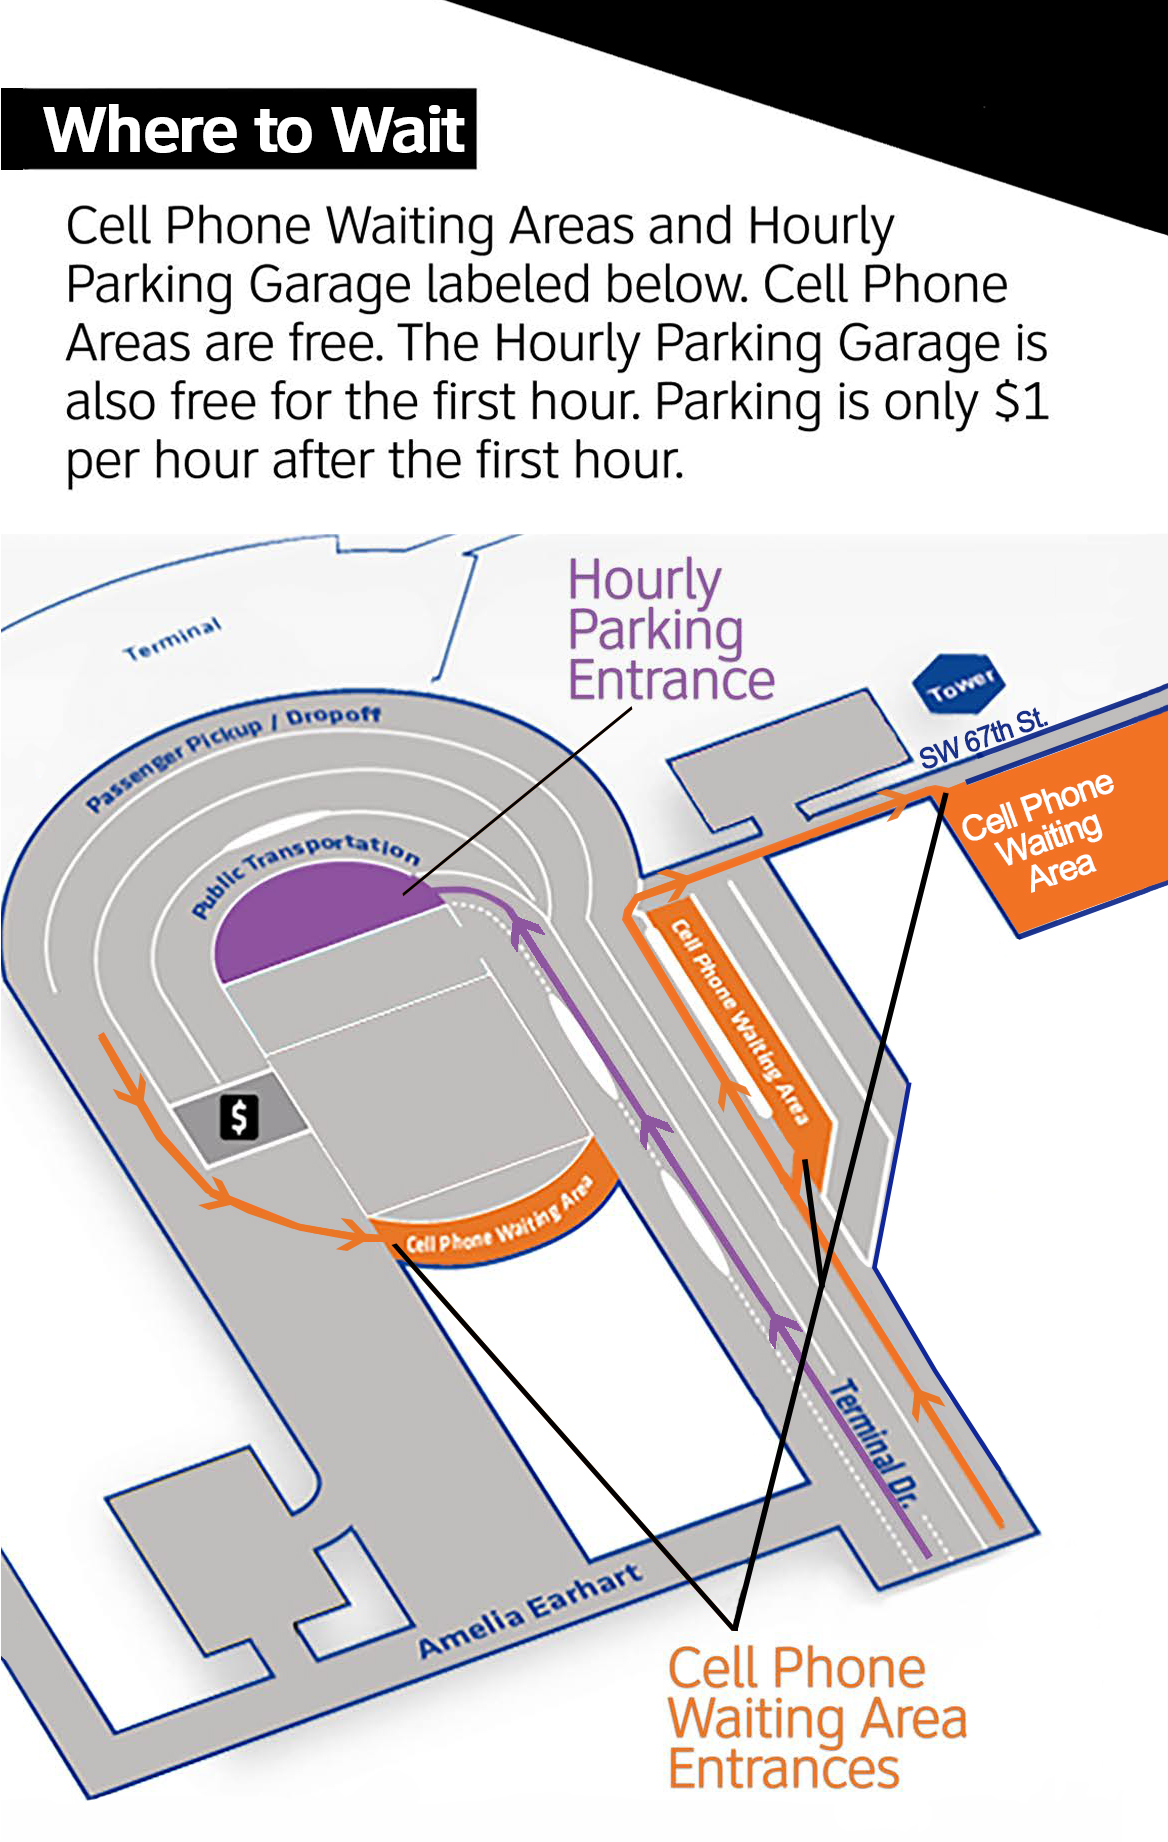 will rogers world airport map Wrwa Adds New Cellphone Waiting Area News City Of Okc will rogers world airport map